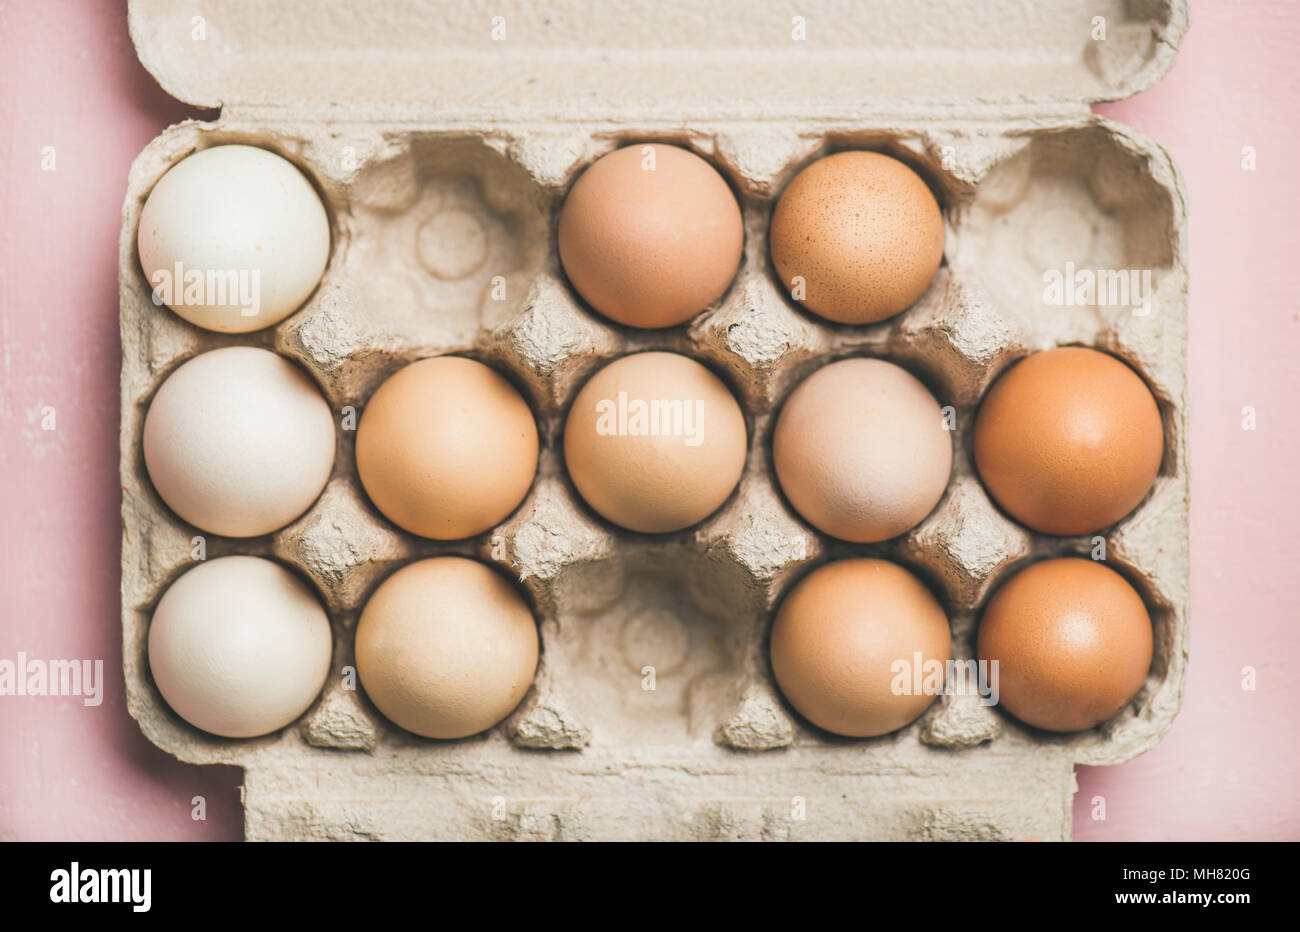 Natural colored eggs for Easter in box, horizontal composition - Stock Image